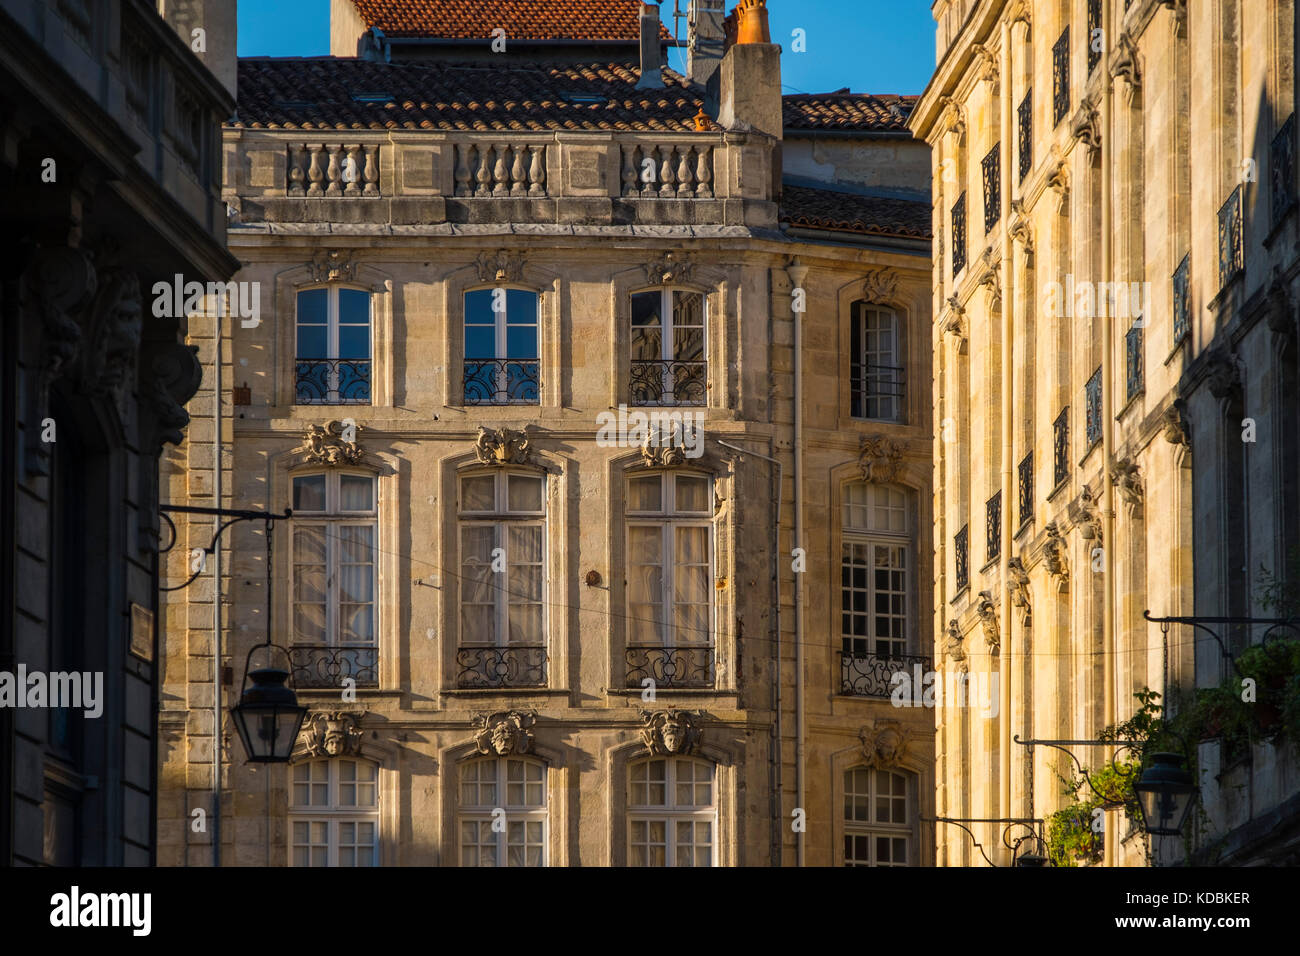 neoclassical architecture building at historic center bordeaux